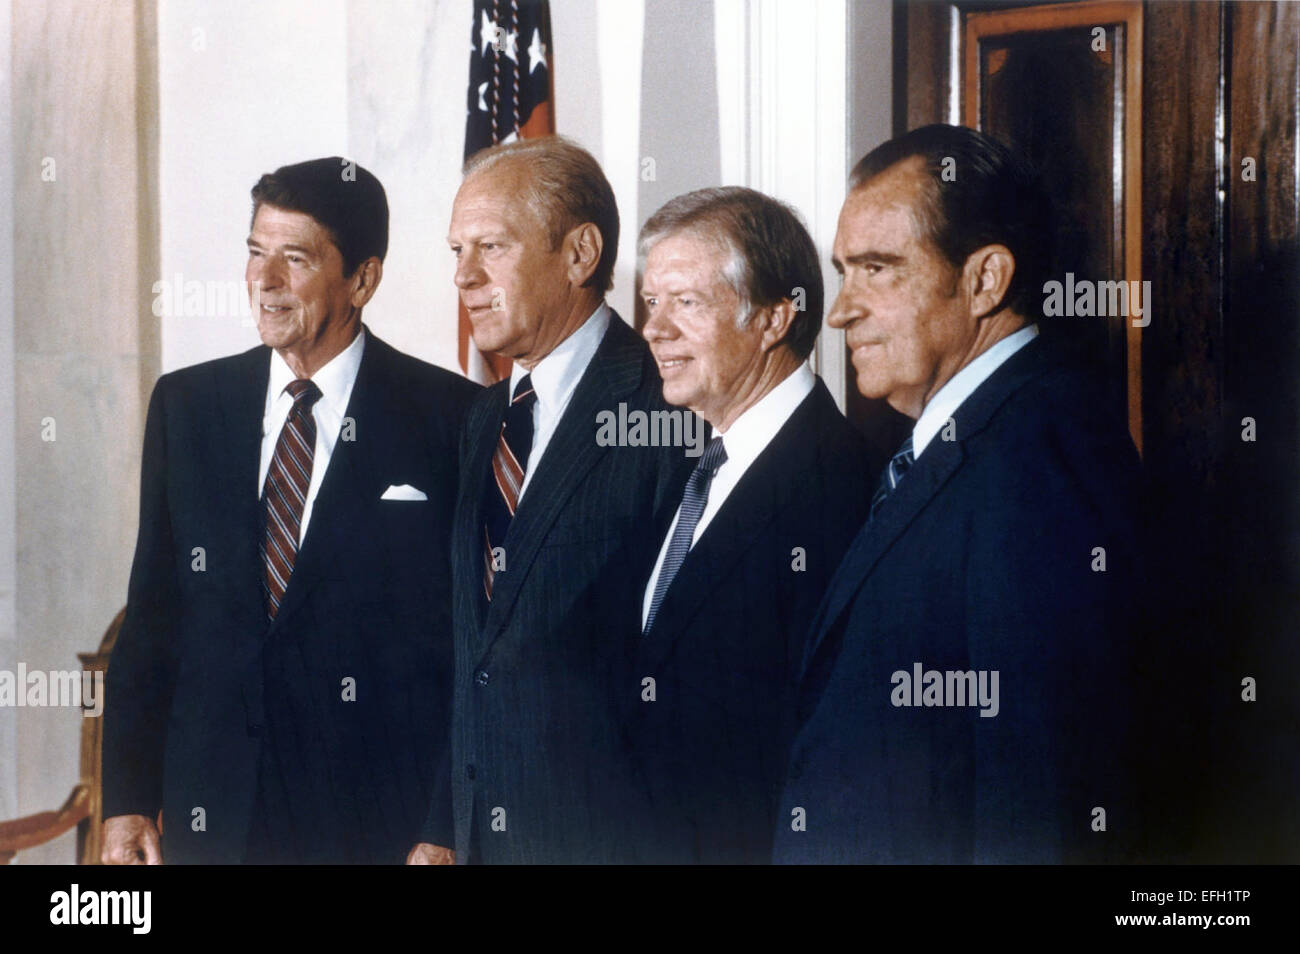 US President Ronald Reagan with former Presidents (L-R) Gerald Ford, Jimmy Carter and Richard Nixon pose for a portrait - Stock Image